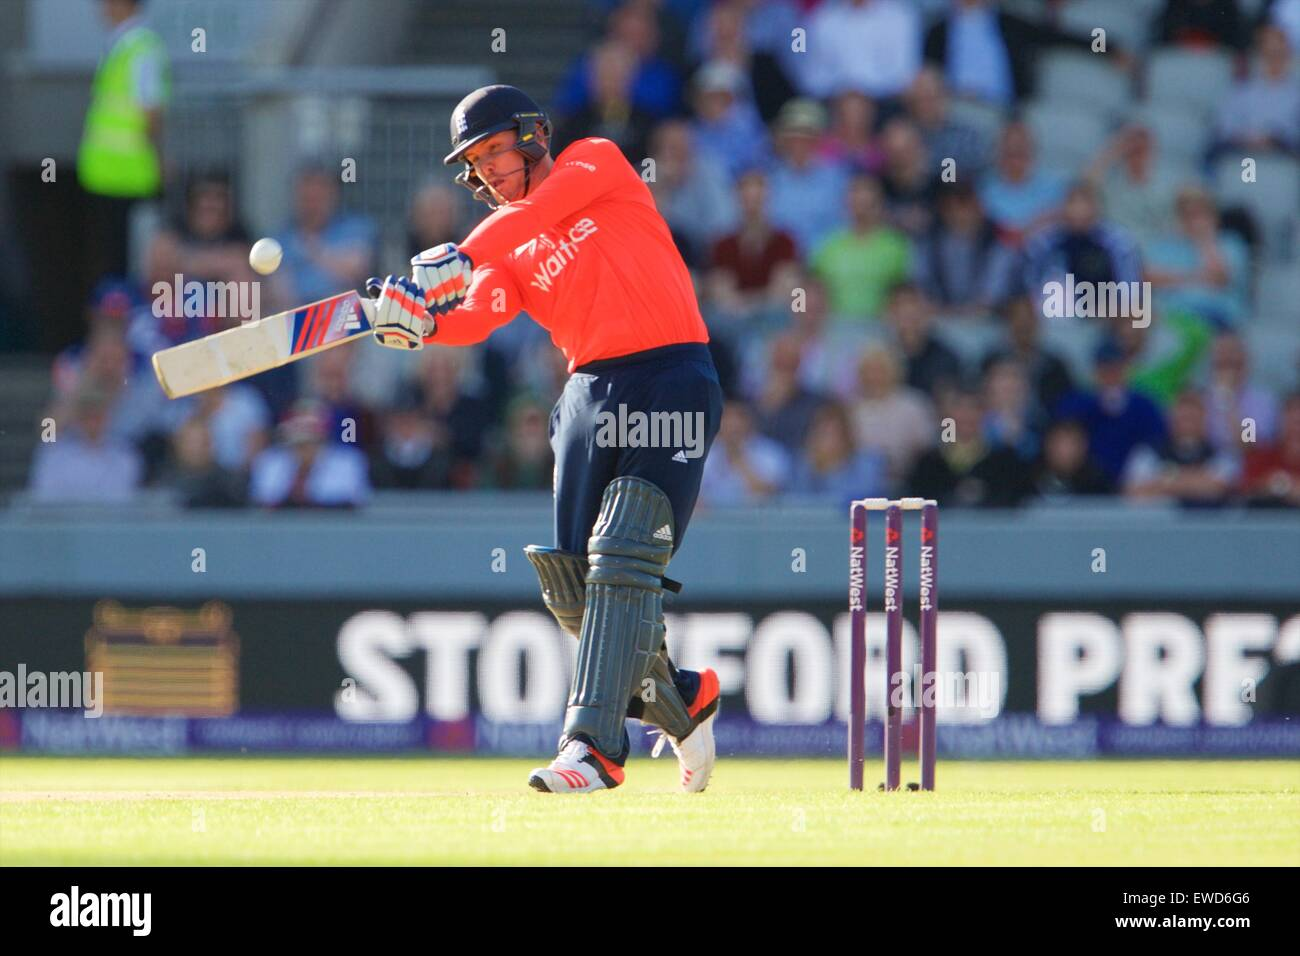 Manchester, UK. 23 Juin, 2015. NatWest International T20 Cricket. L'Angleterre contre la Nouvelle-Zélande. Photo Stock